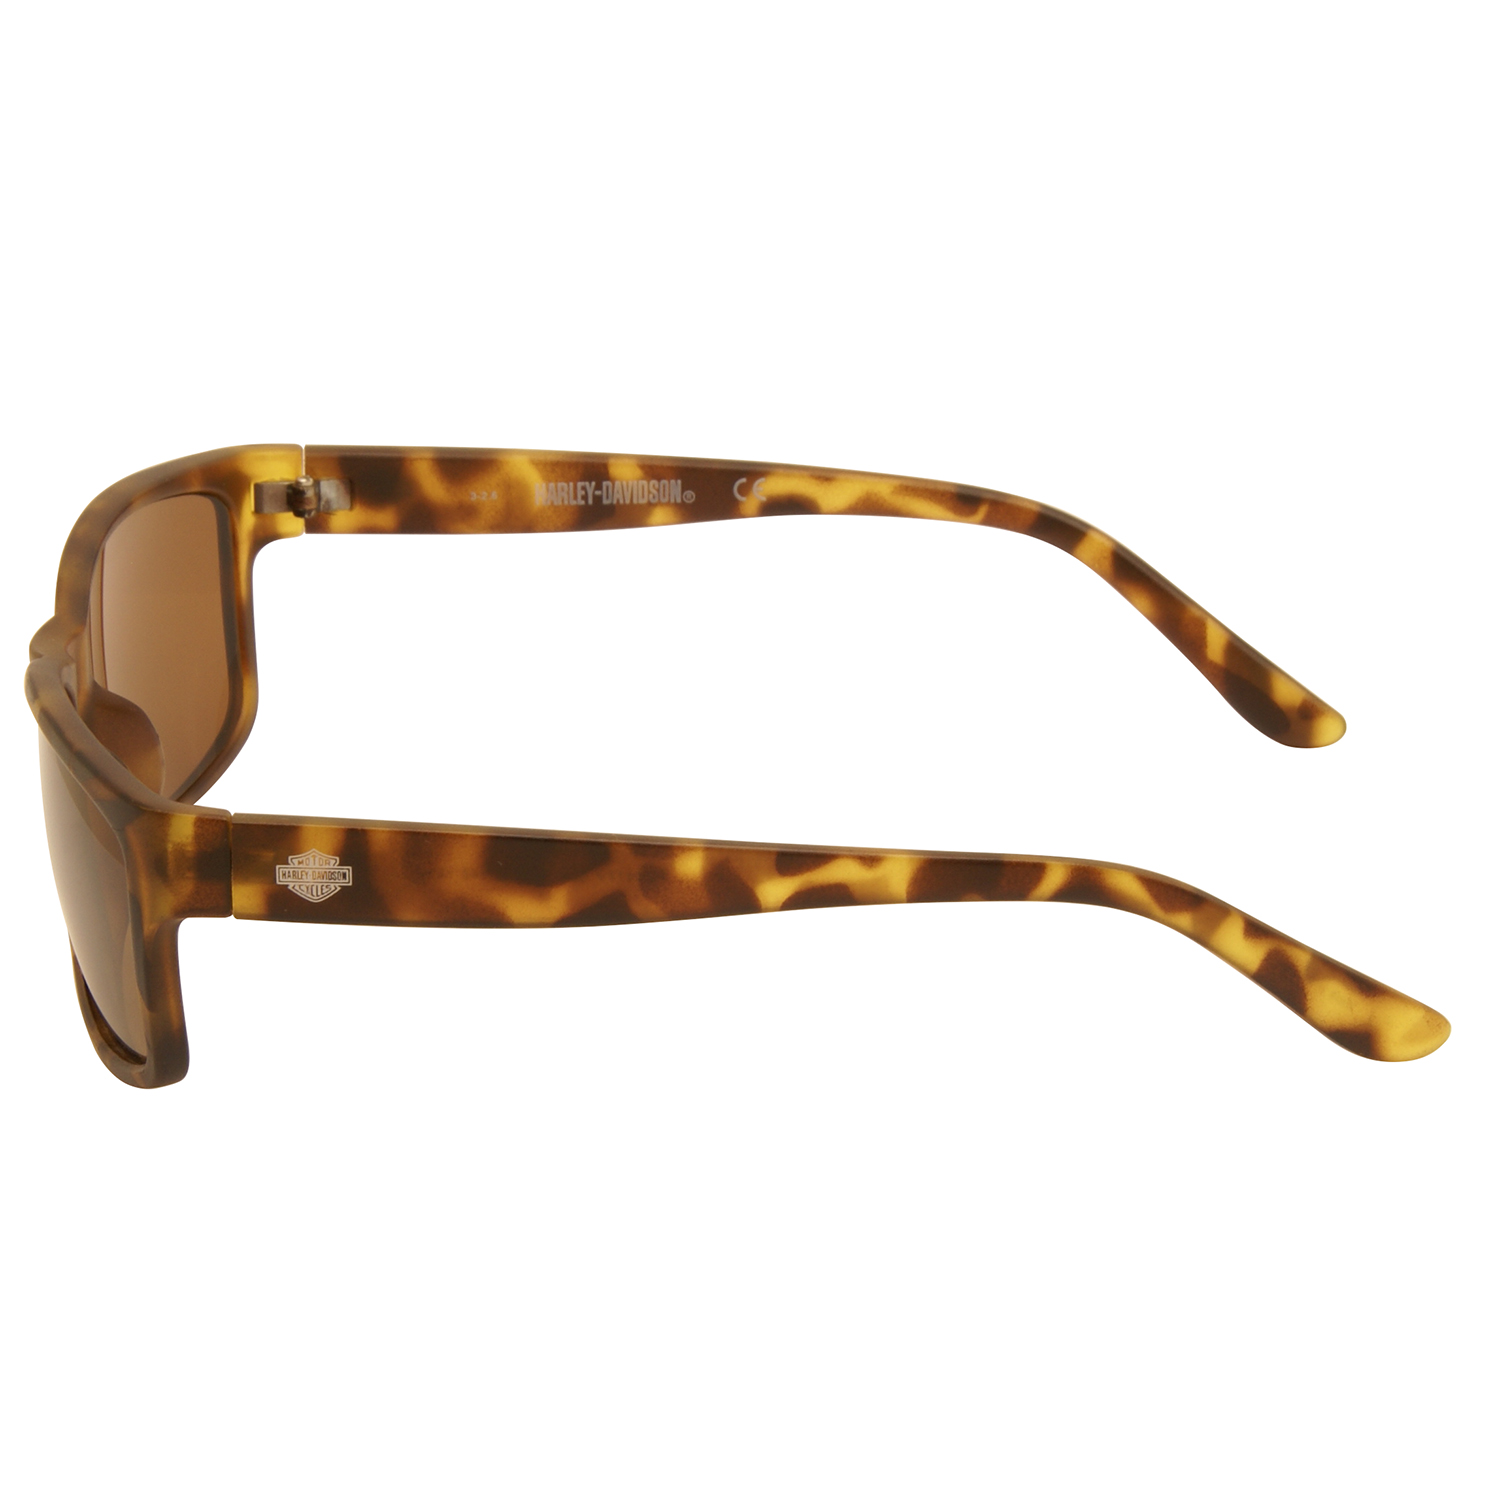 Harley Davidson – Matt Brown Camouflage Classic Style Sunglasses with Case